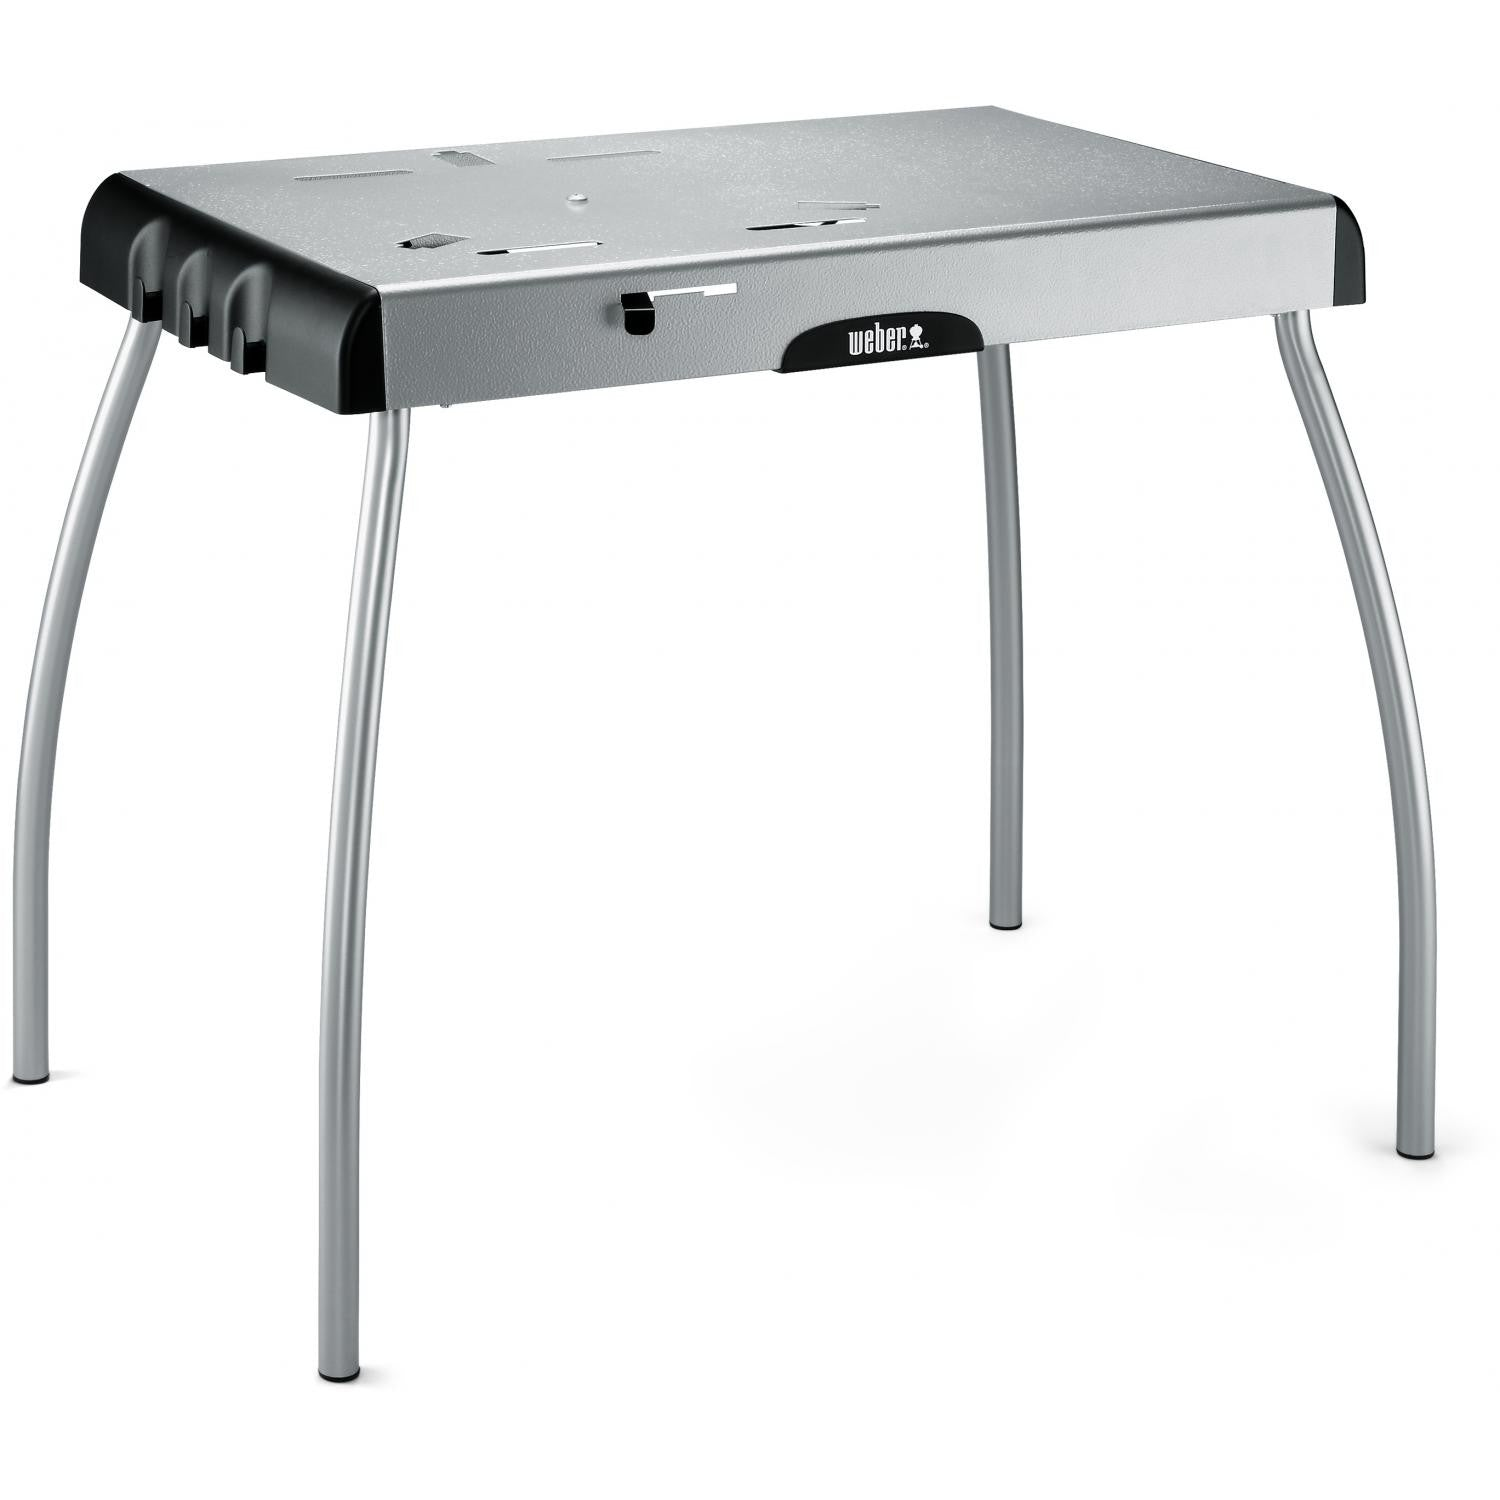 Weber 7445 30 X 19-Inch Painted Steel Portable Charcoal Grill Table With Tool Hooks